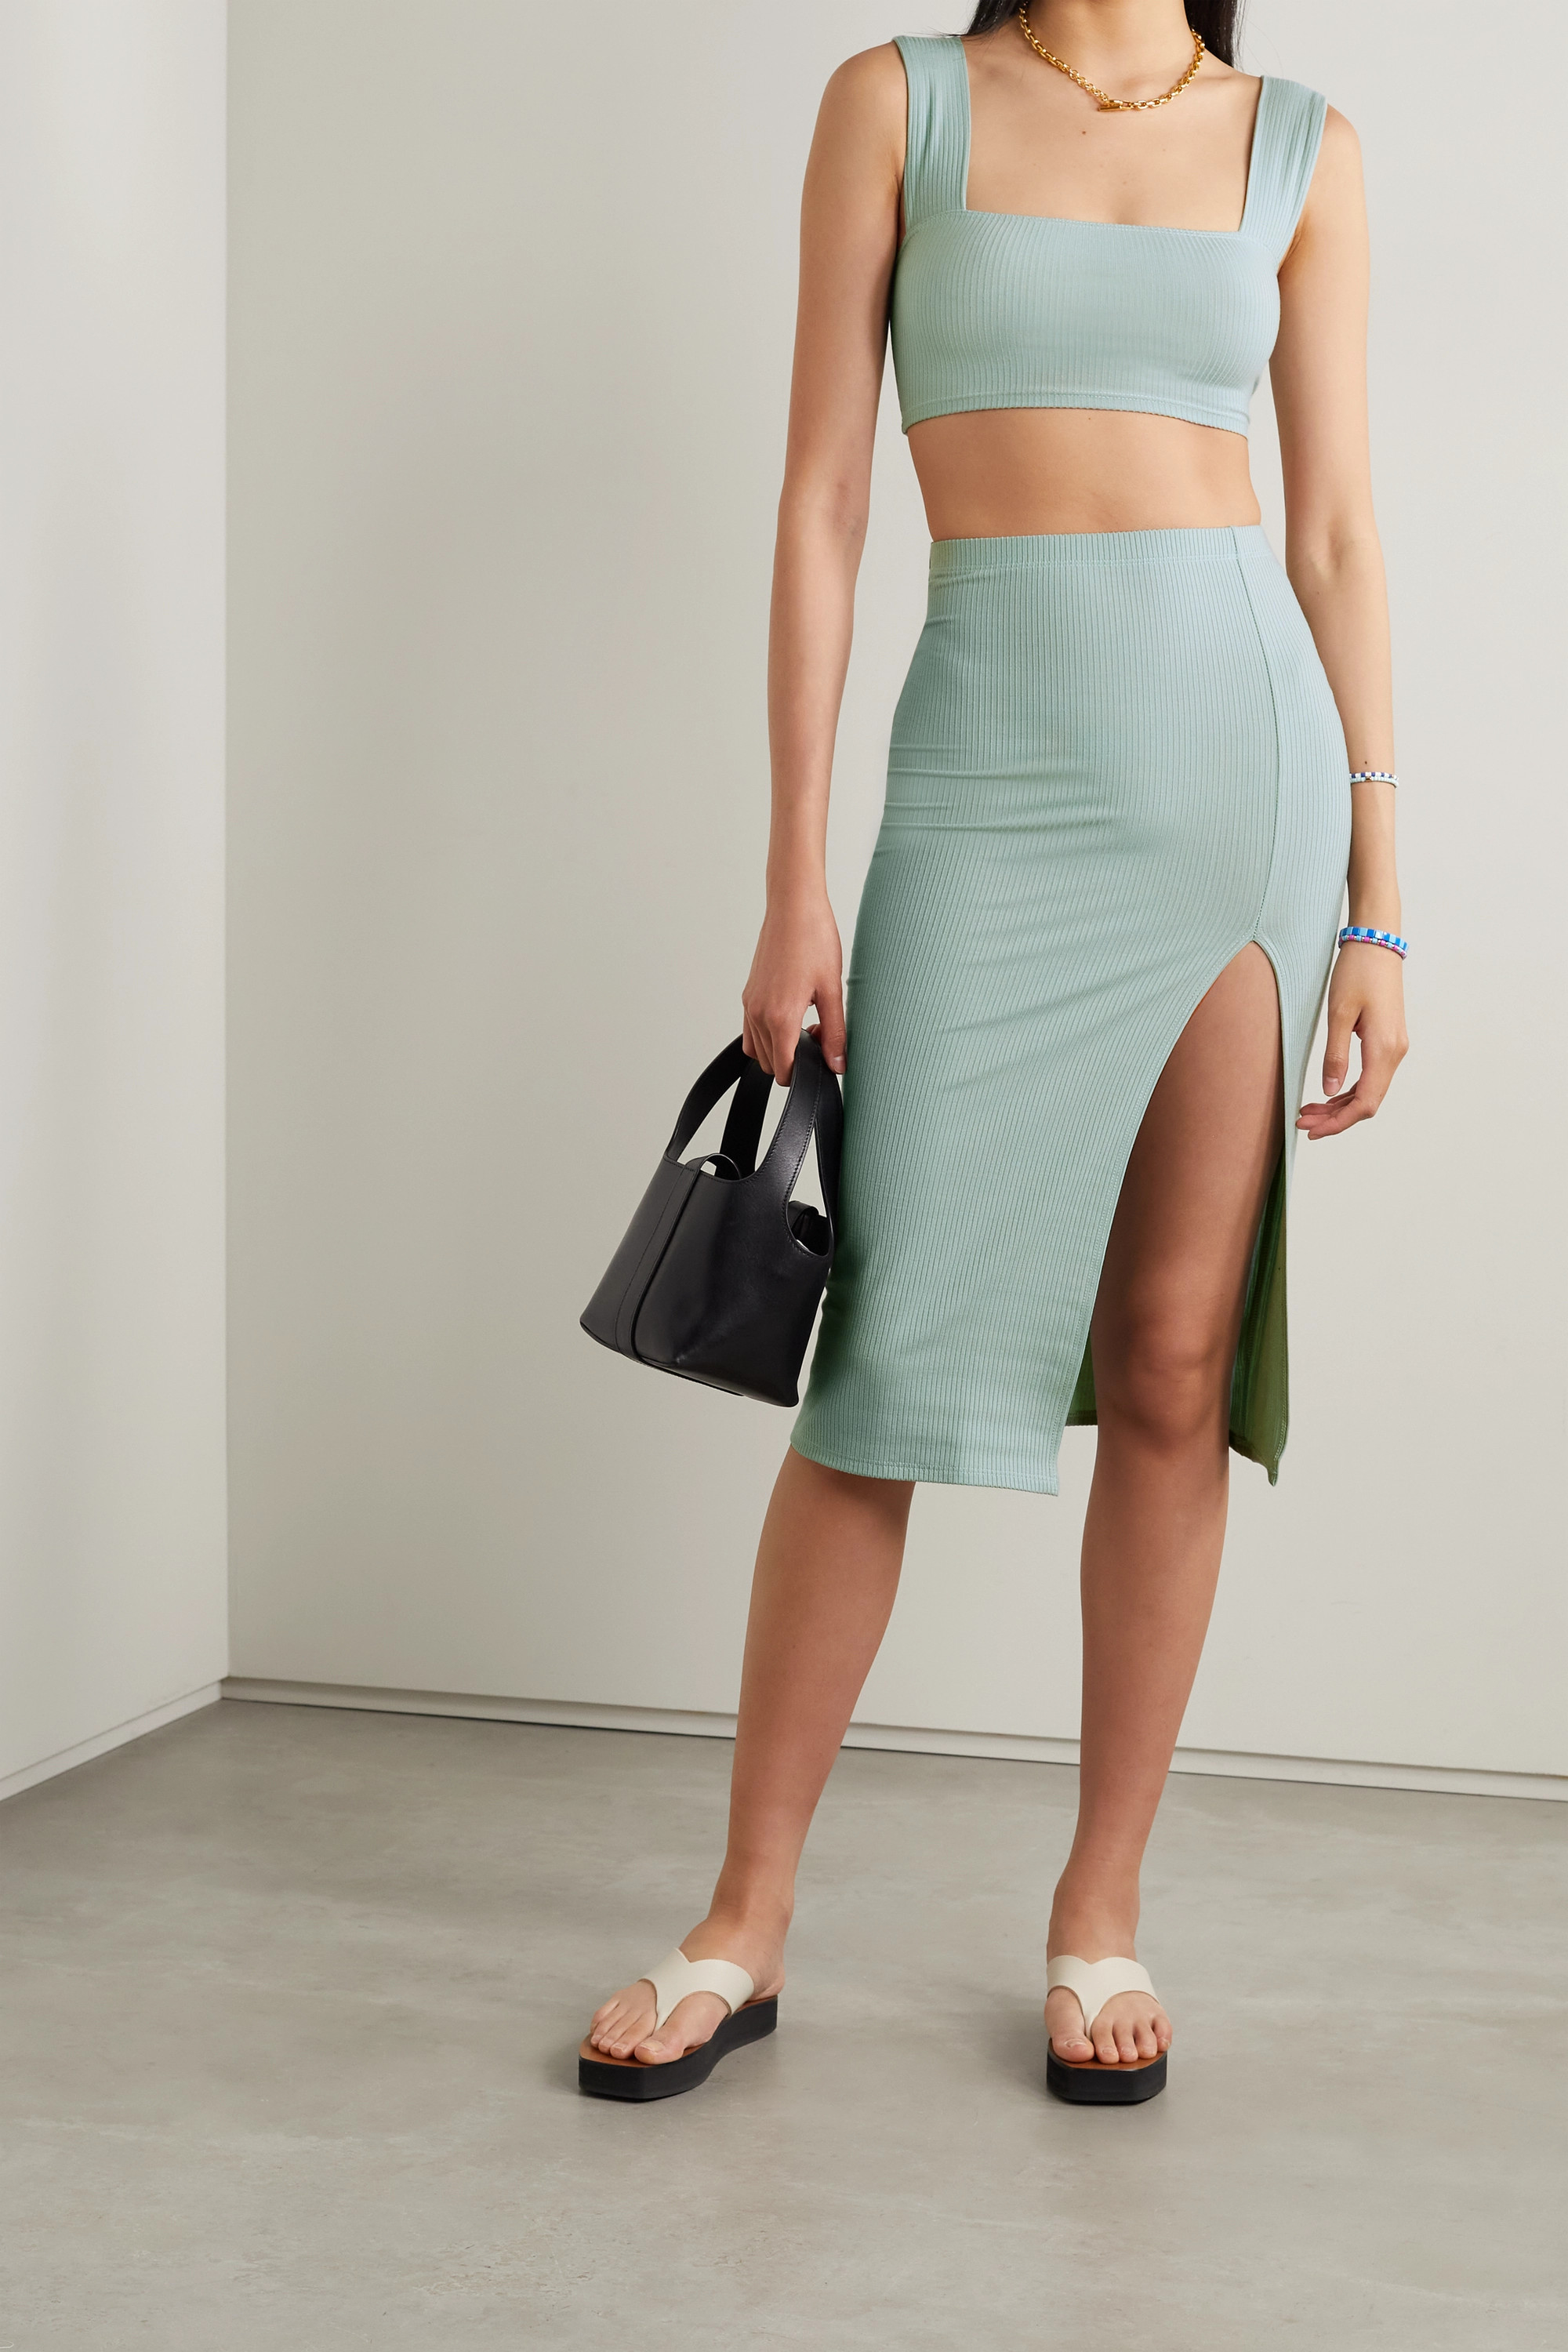 Reformation Ozzie ribbed stretch-TENCEL Lyocell top and skirt set